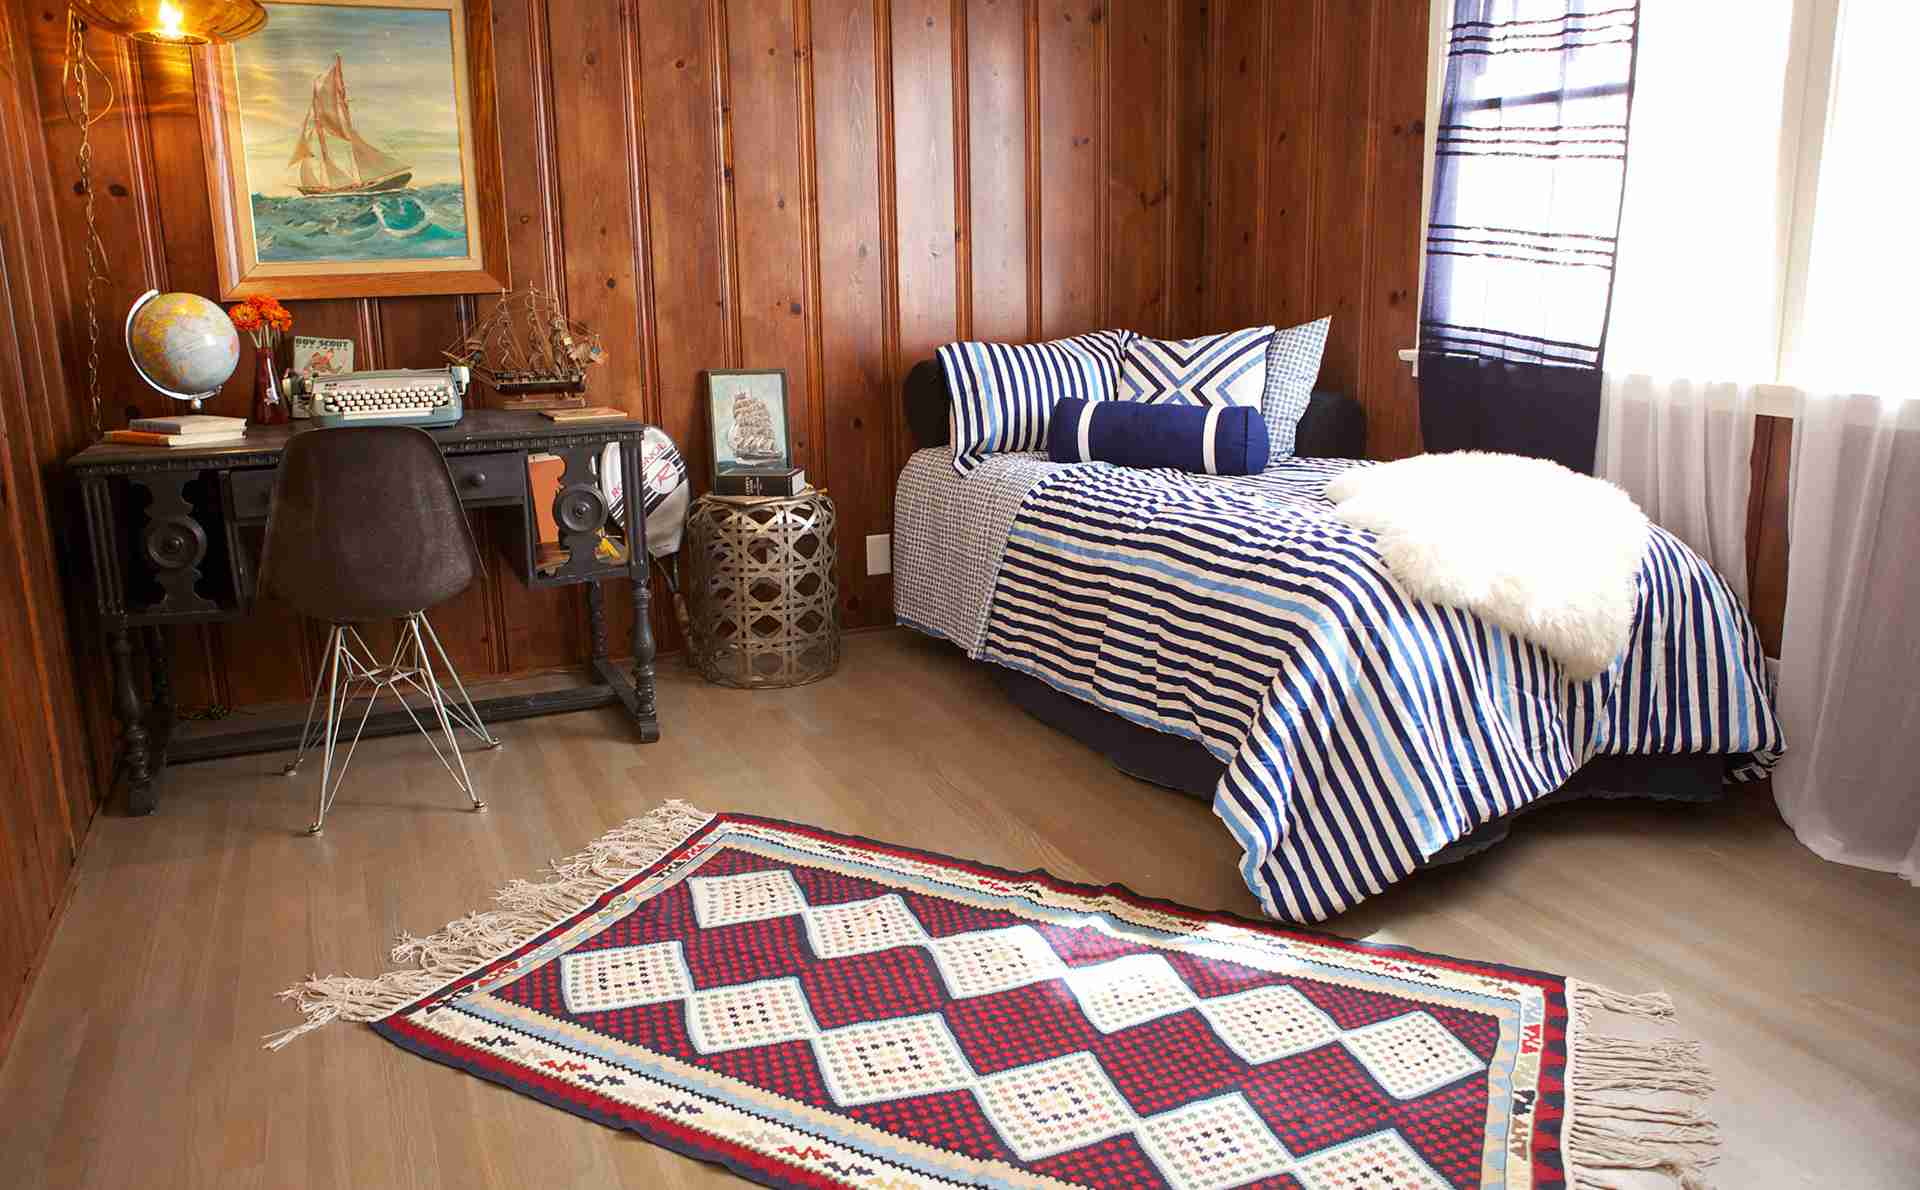 bedroom homes to interior hickory click bedrooms enlarge design image master